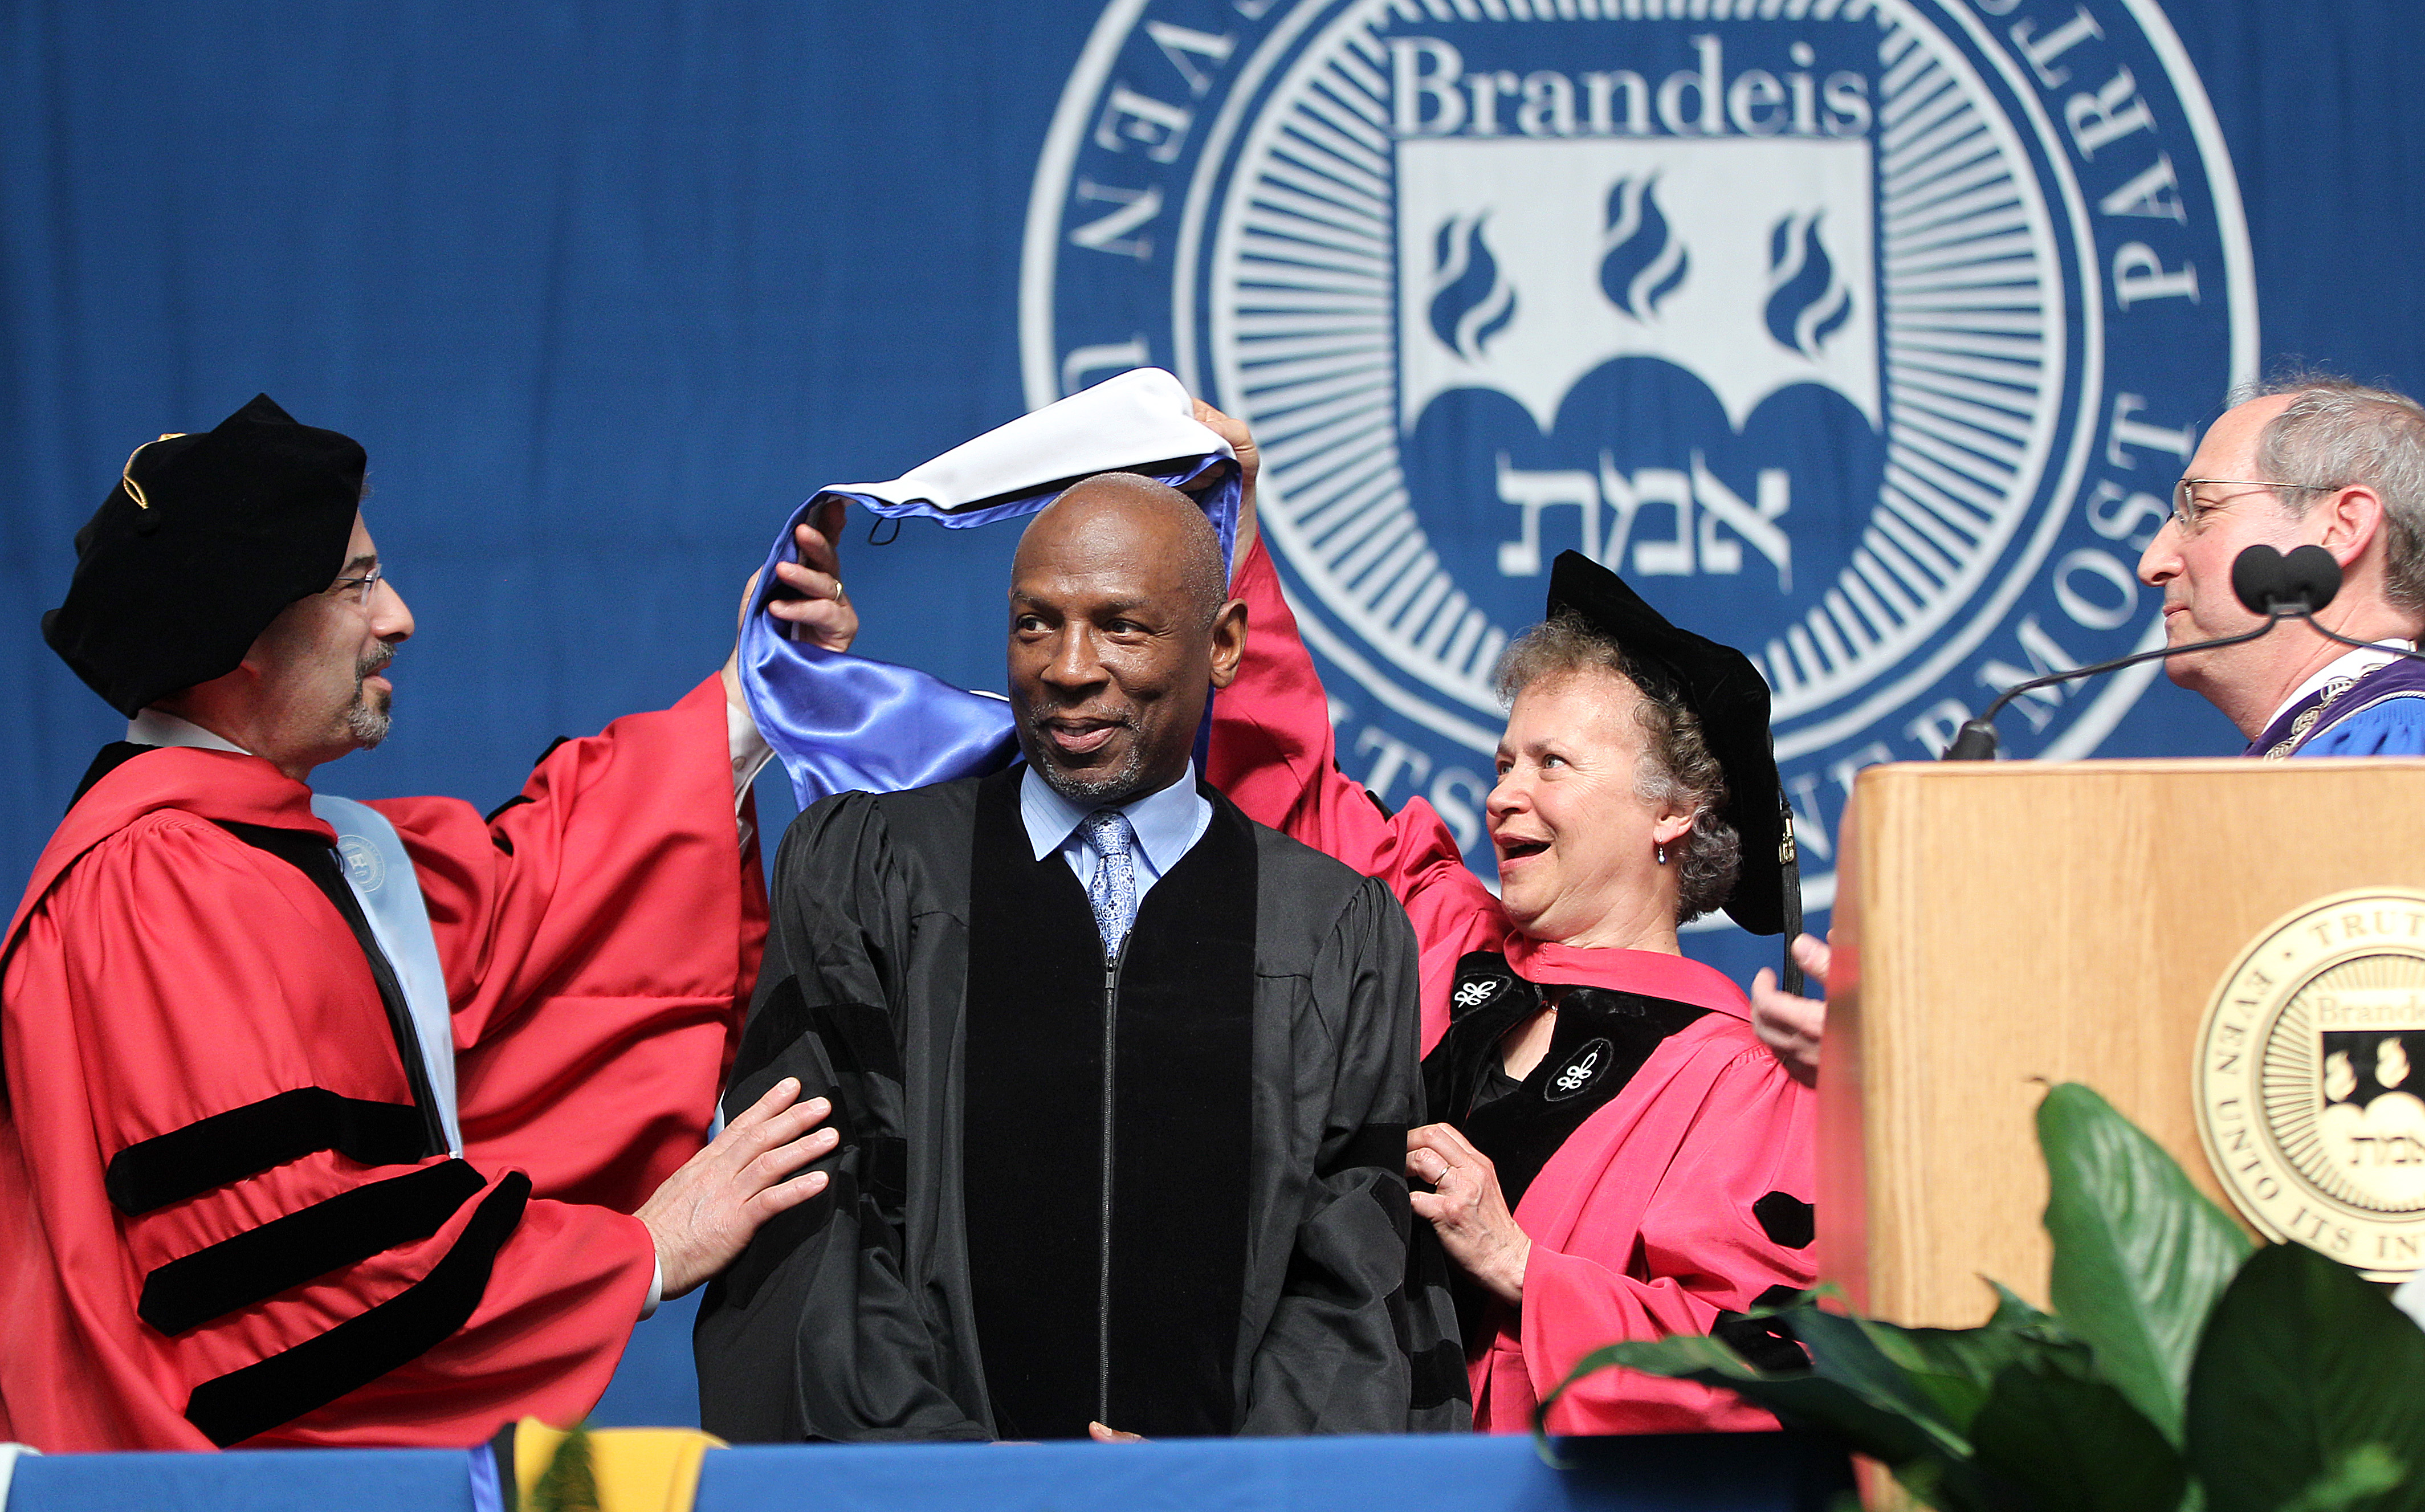 President and CEO of the Harlem Children's Zone, receives the Honorary Degree of Doctor of Humane Letters at Brandeis University's 63rd commencement on May 18, 2014.